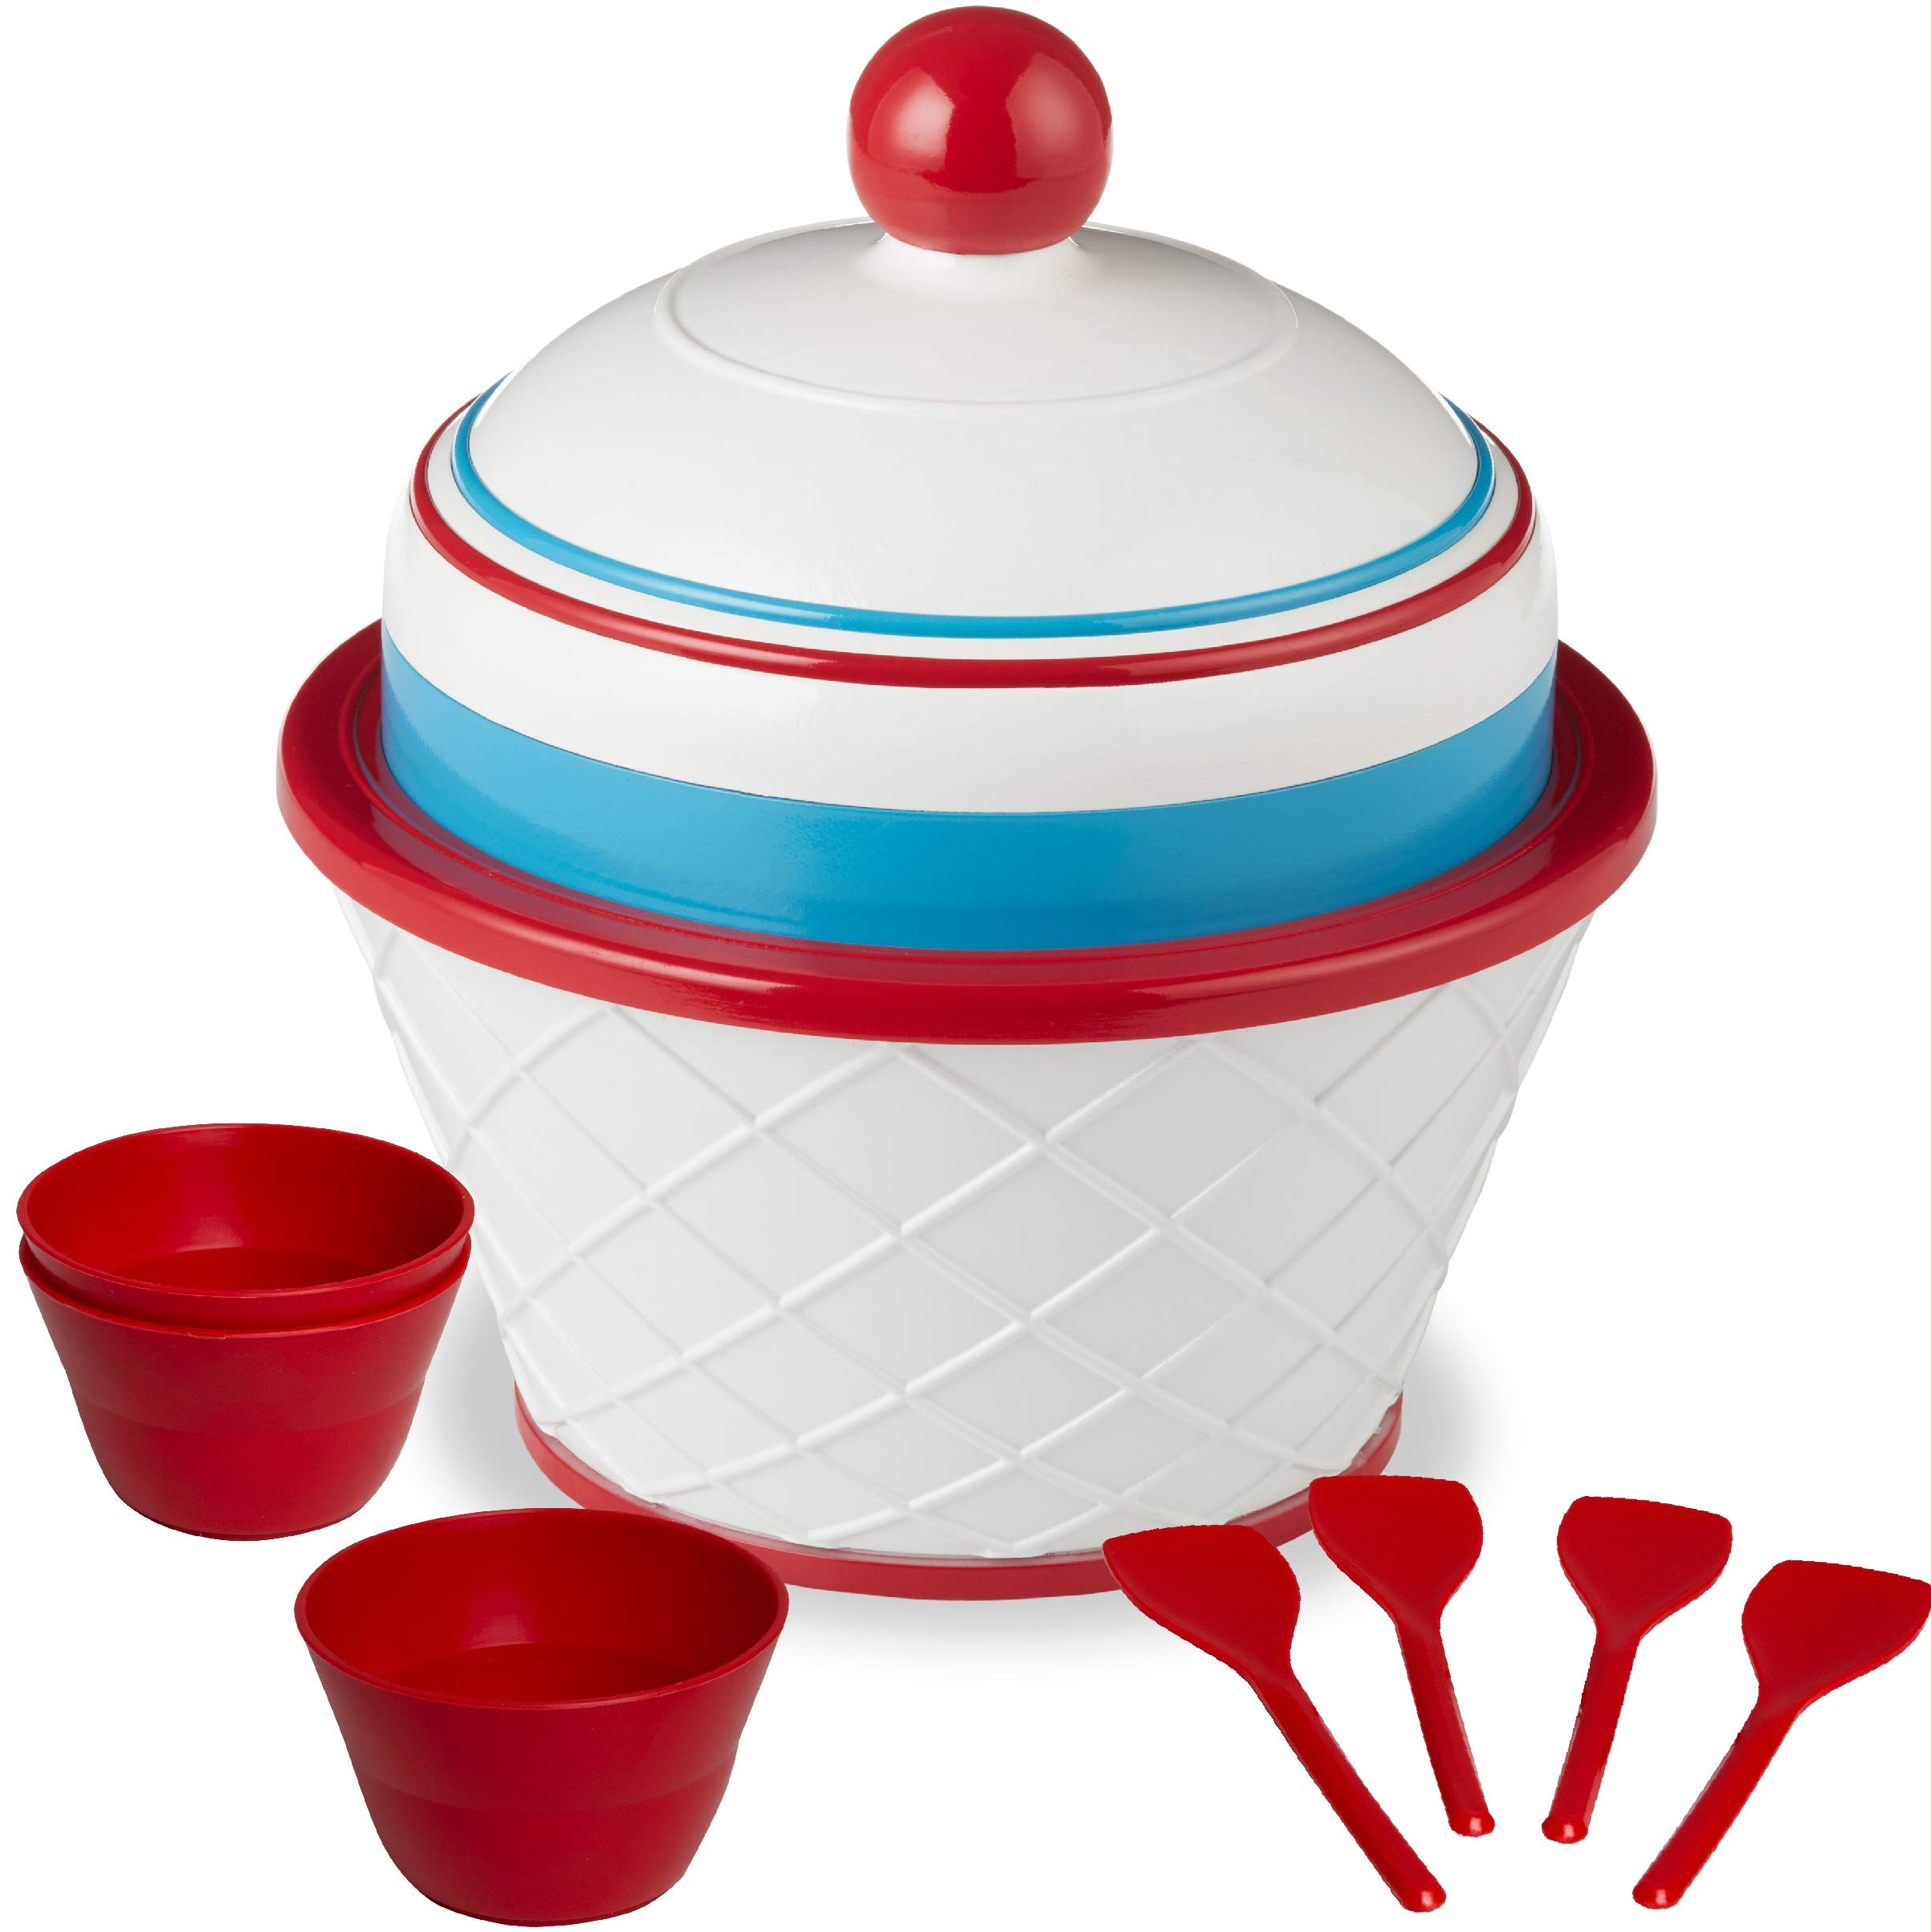 FAO Schwarz Motorized DIY Ice Cream Station with Double-Insulated Freezer Bowel and Electric Mixer, Includes Serving Bowls and Spoons, Make Your Favorite Frozen Sweet Treats, Fun Family Activity Set by FAO Schwarz